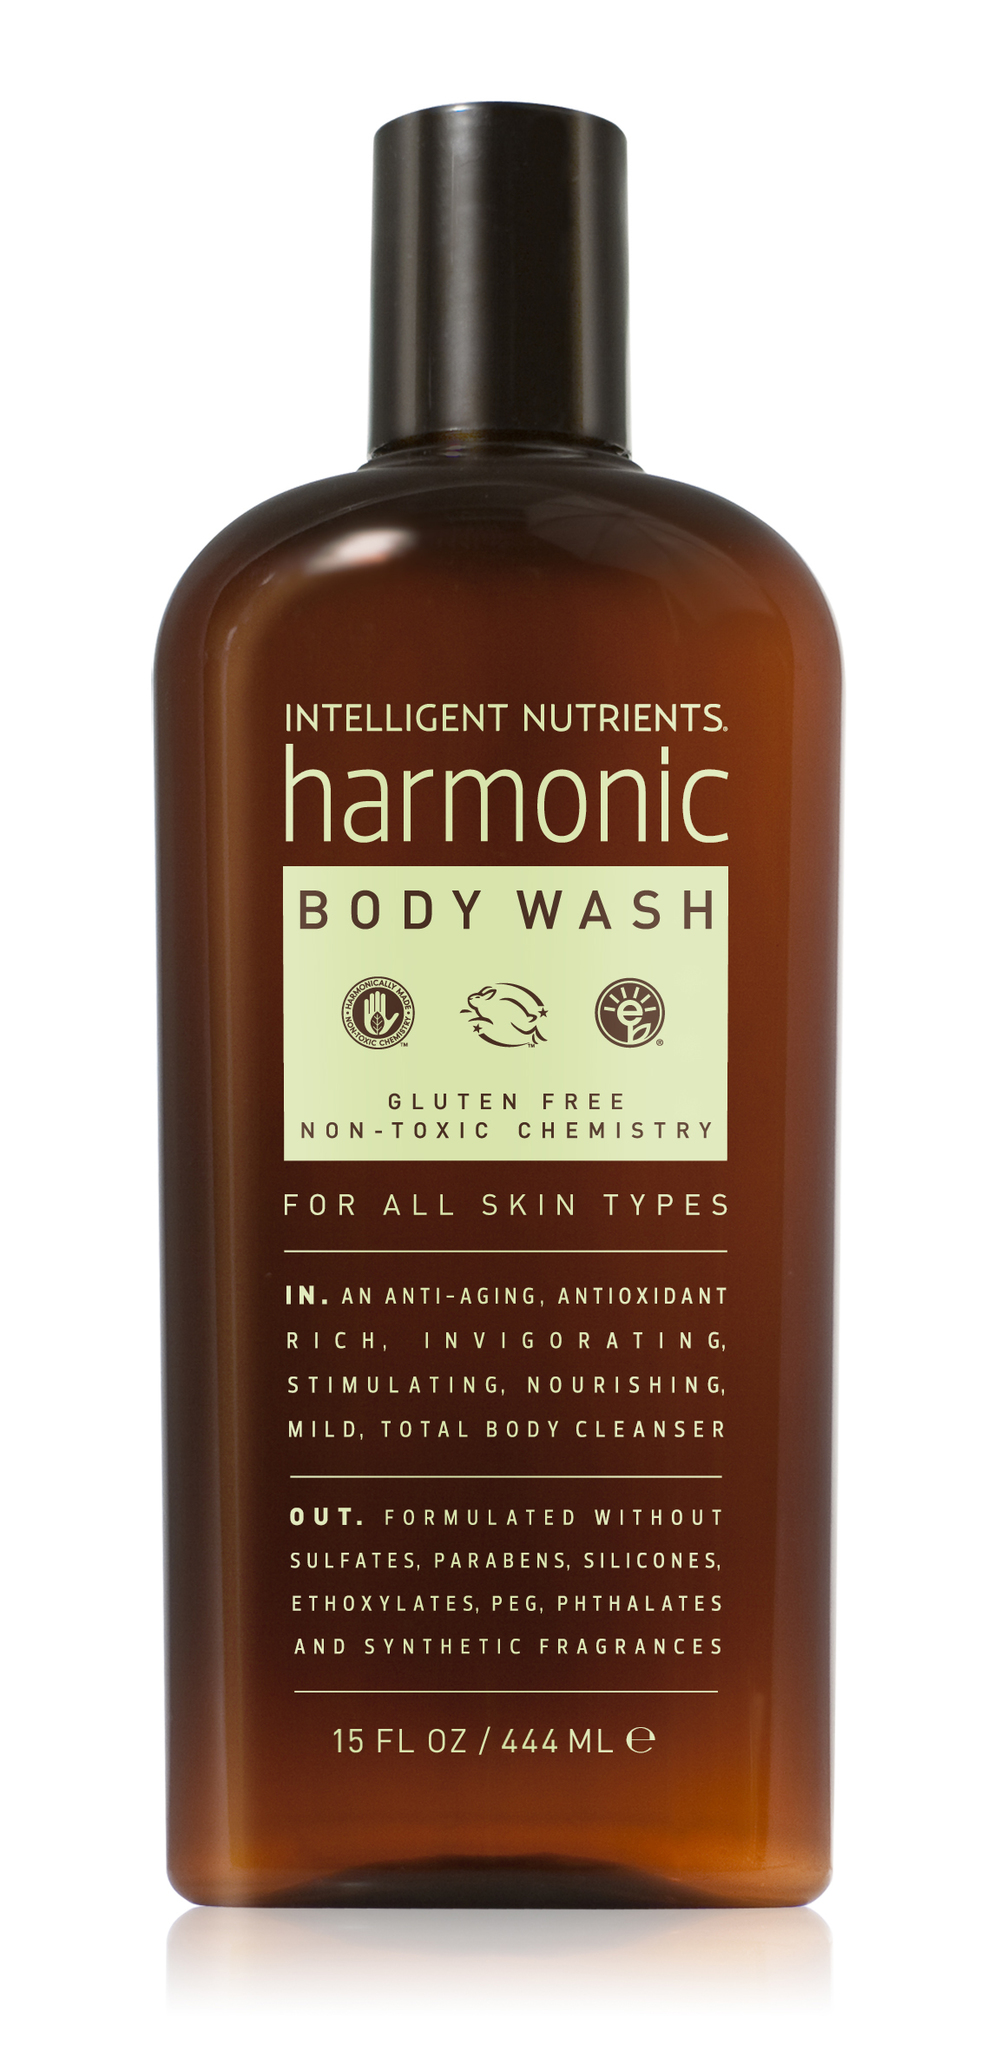 Harmonic Body Wash (DKK250/444ml)